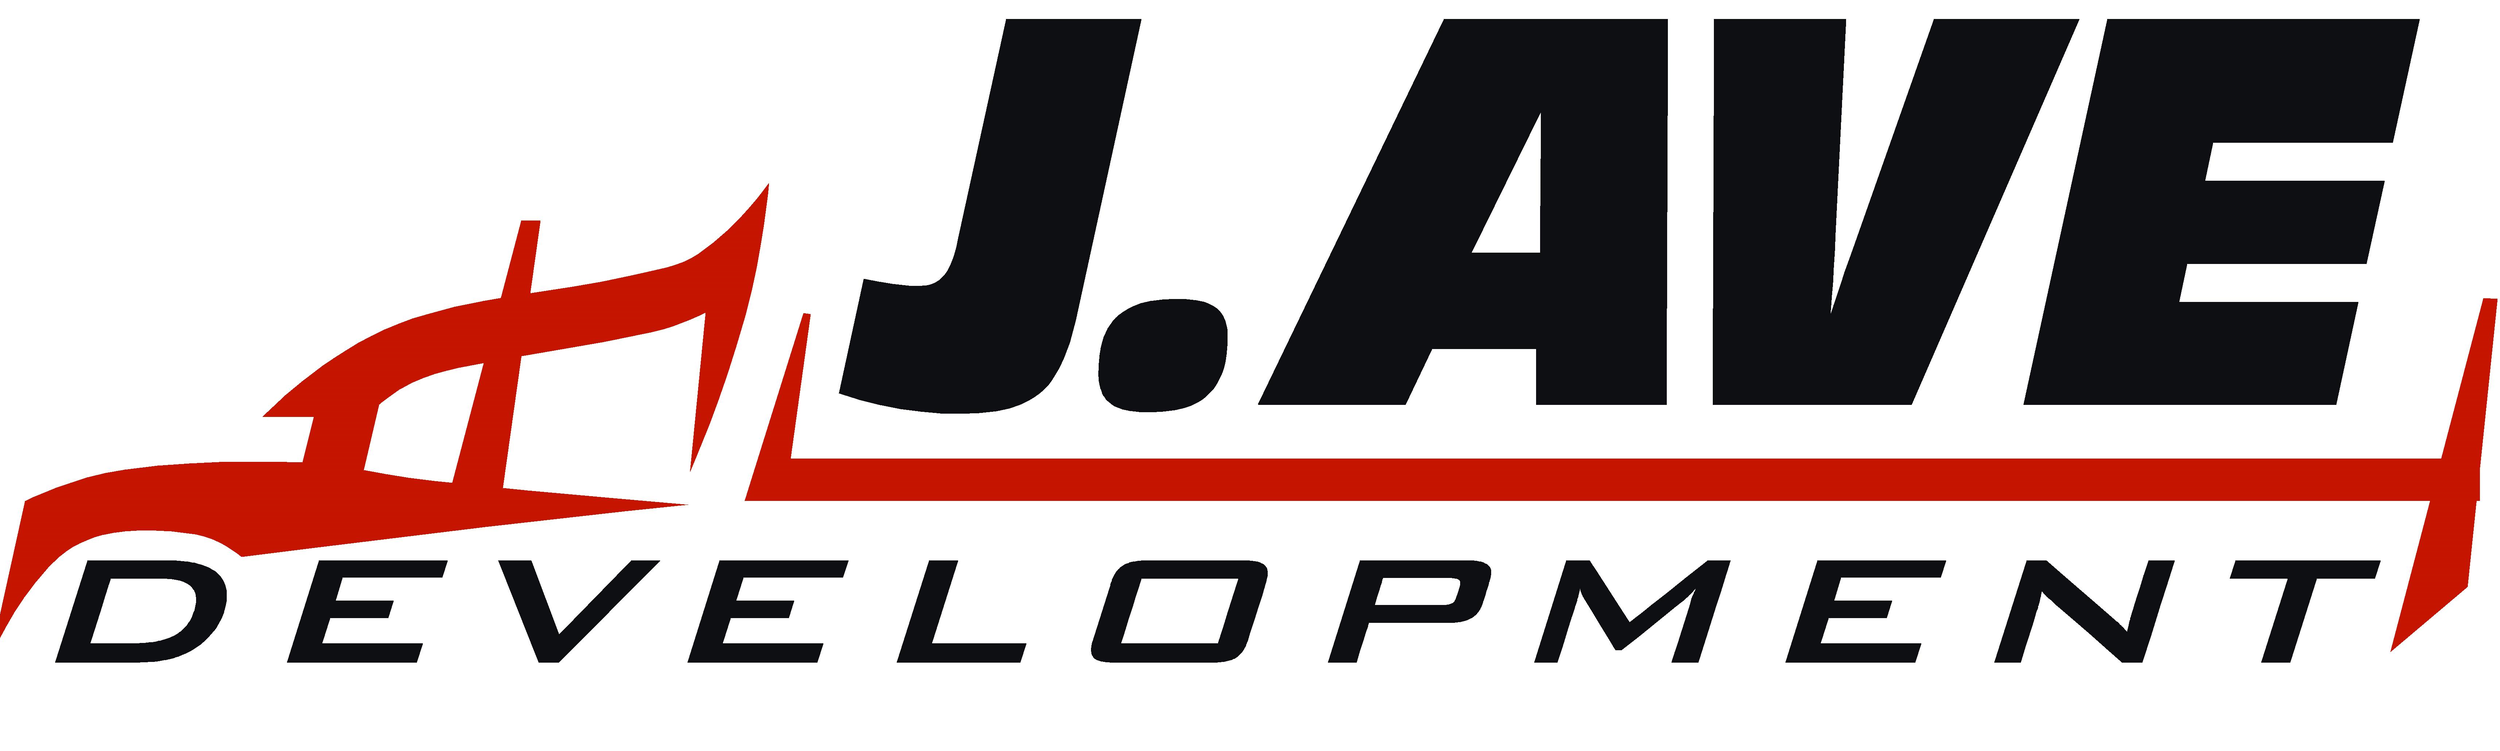 J. Ave logo (Add MBE-DBE below logo on sign) .png